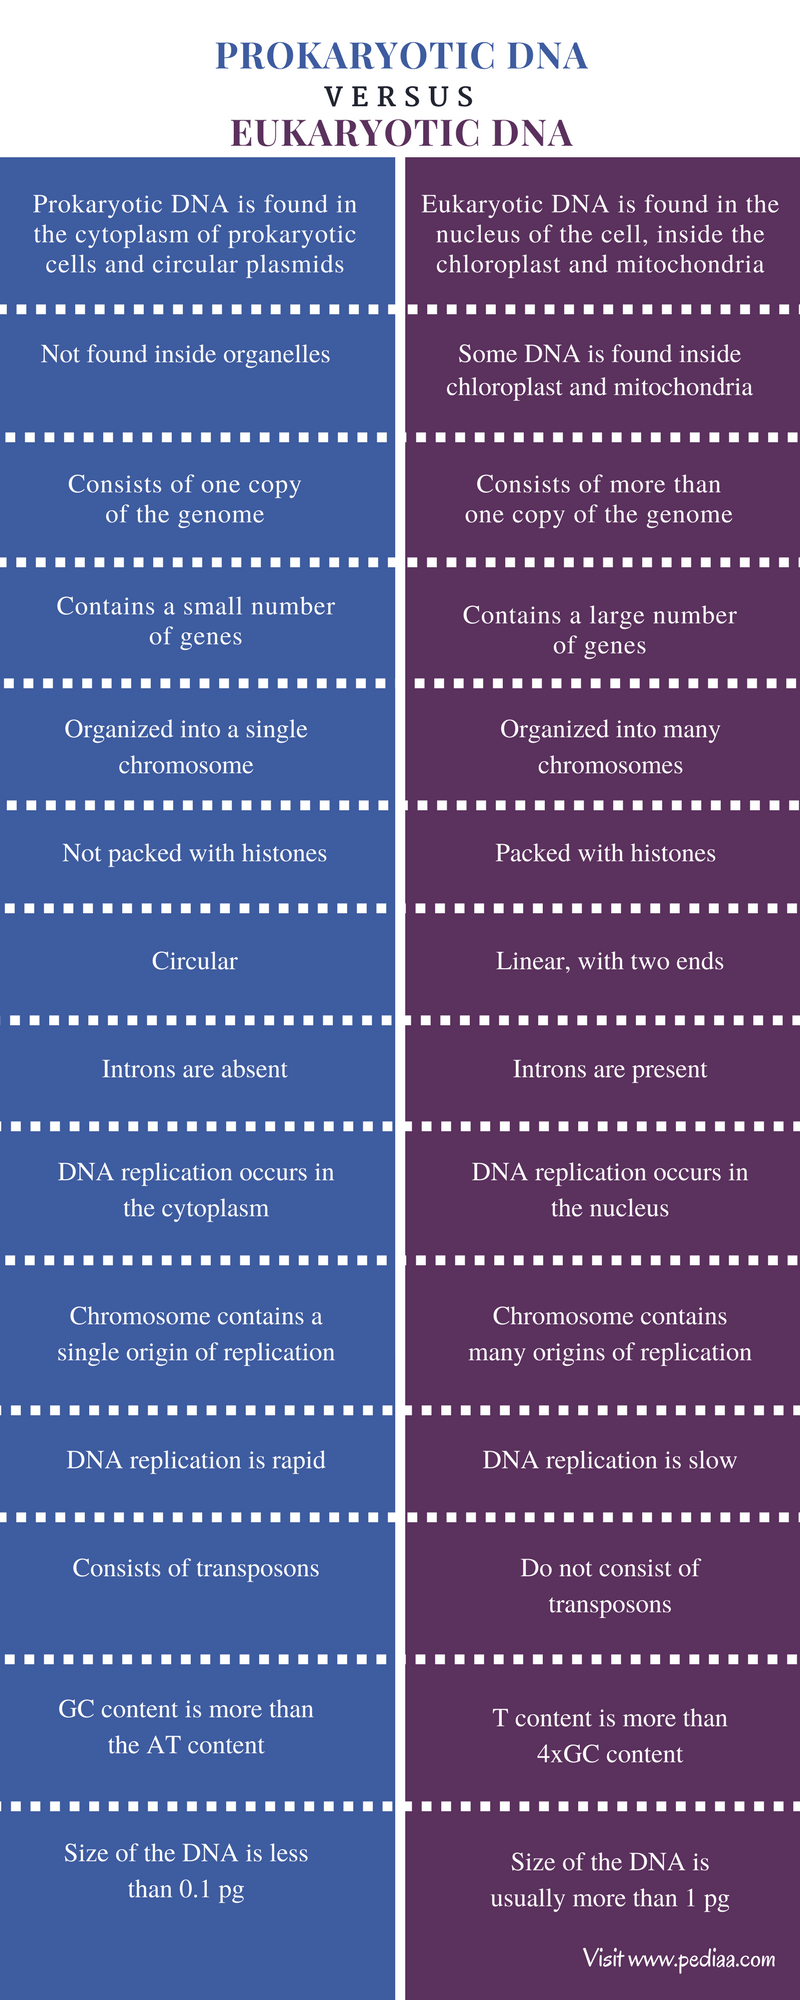 Difference Between Prokaryotic and Eukaryotic DNA - Comparison Summary